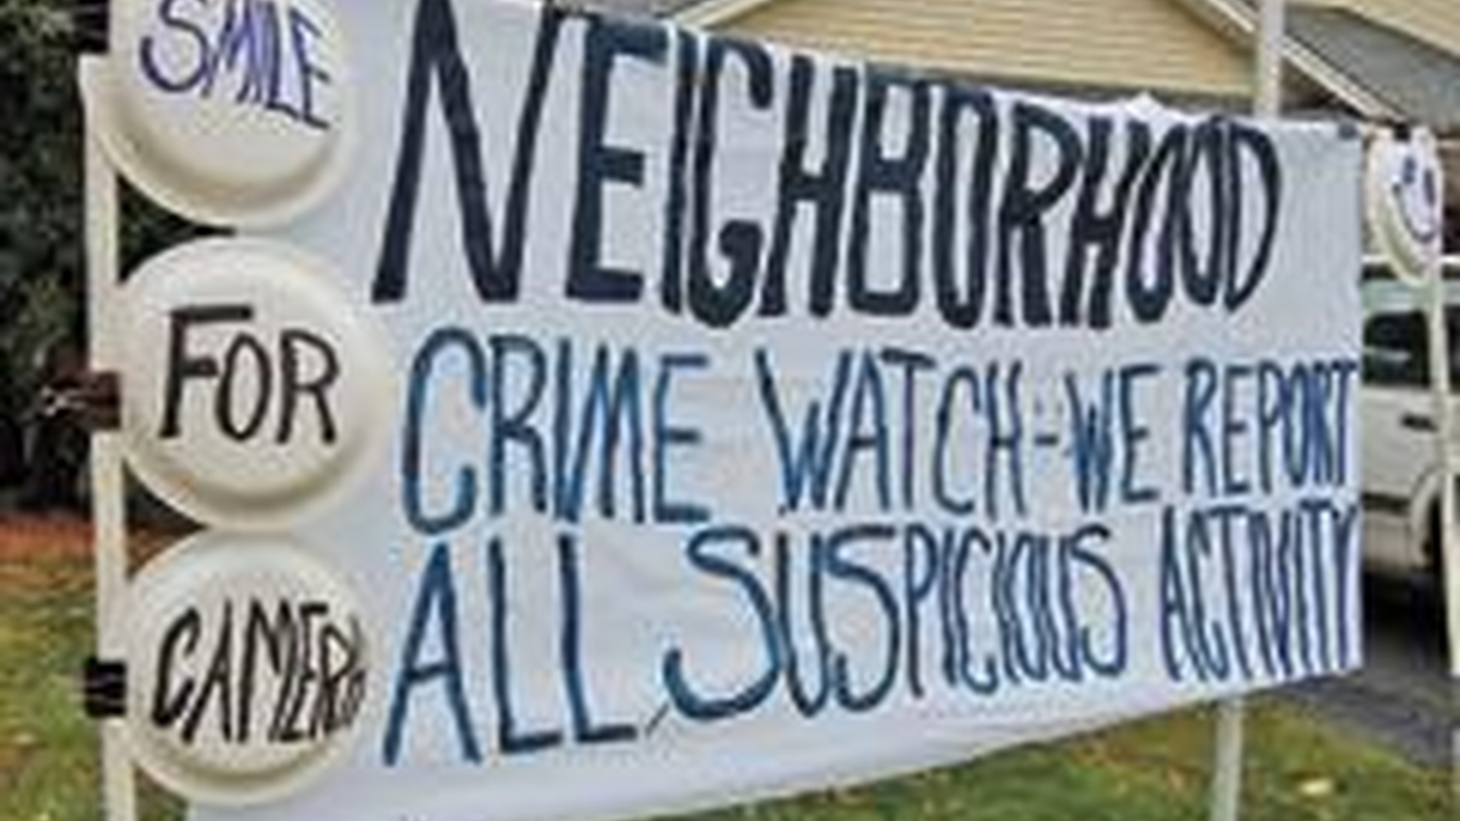 It's amazing just how much drama can take place in the mini-universe of a neighborhood. This week we bring you stories of neighbors watching out for each other, for better and worse, including a story from CBC's WireTap.